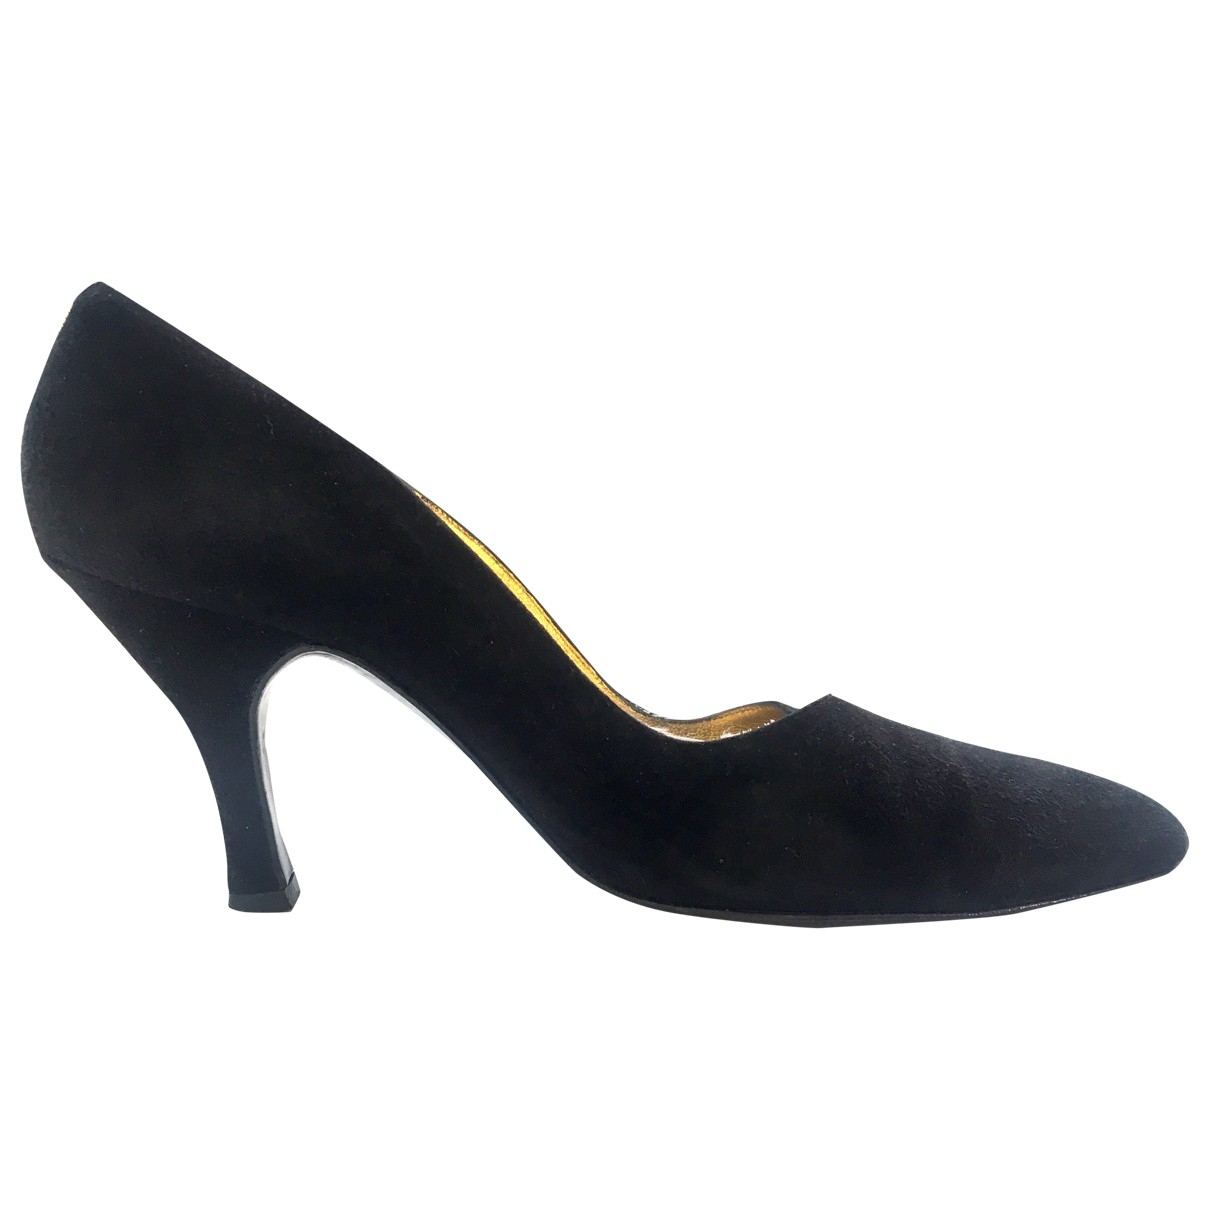 Bruno Magli \N Pumps in  Schwarz Leder